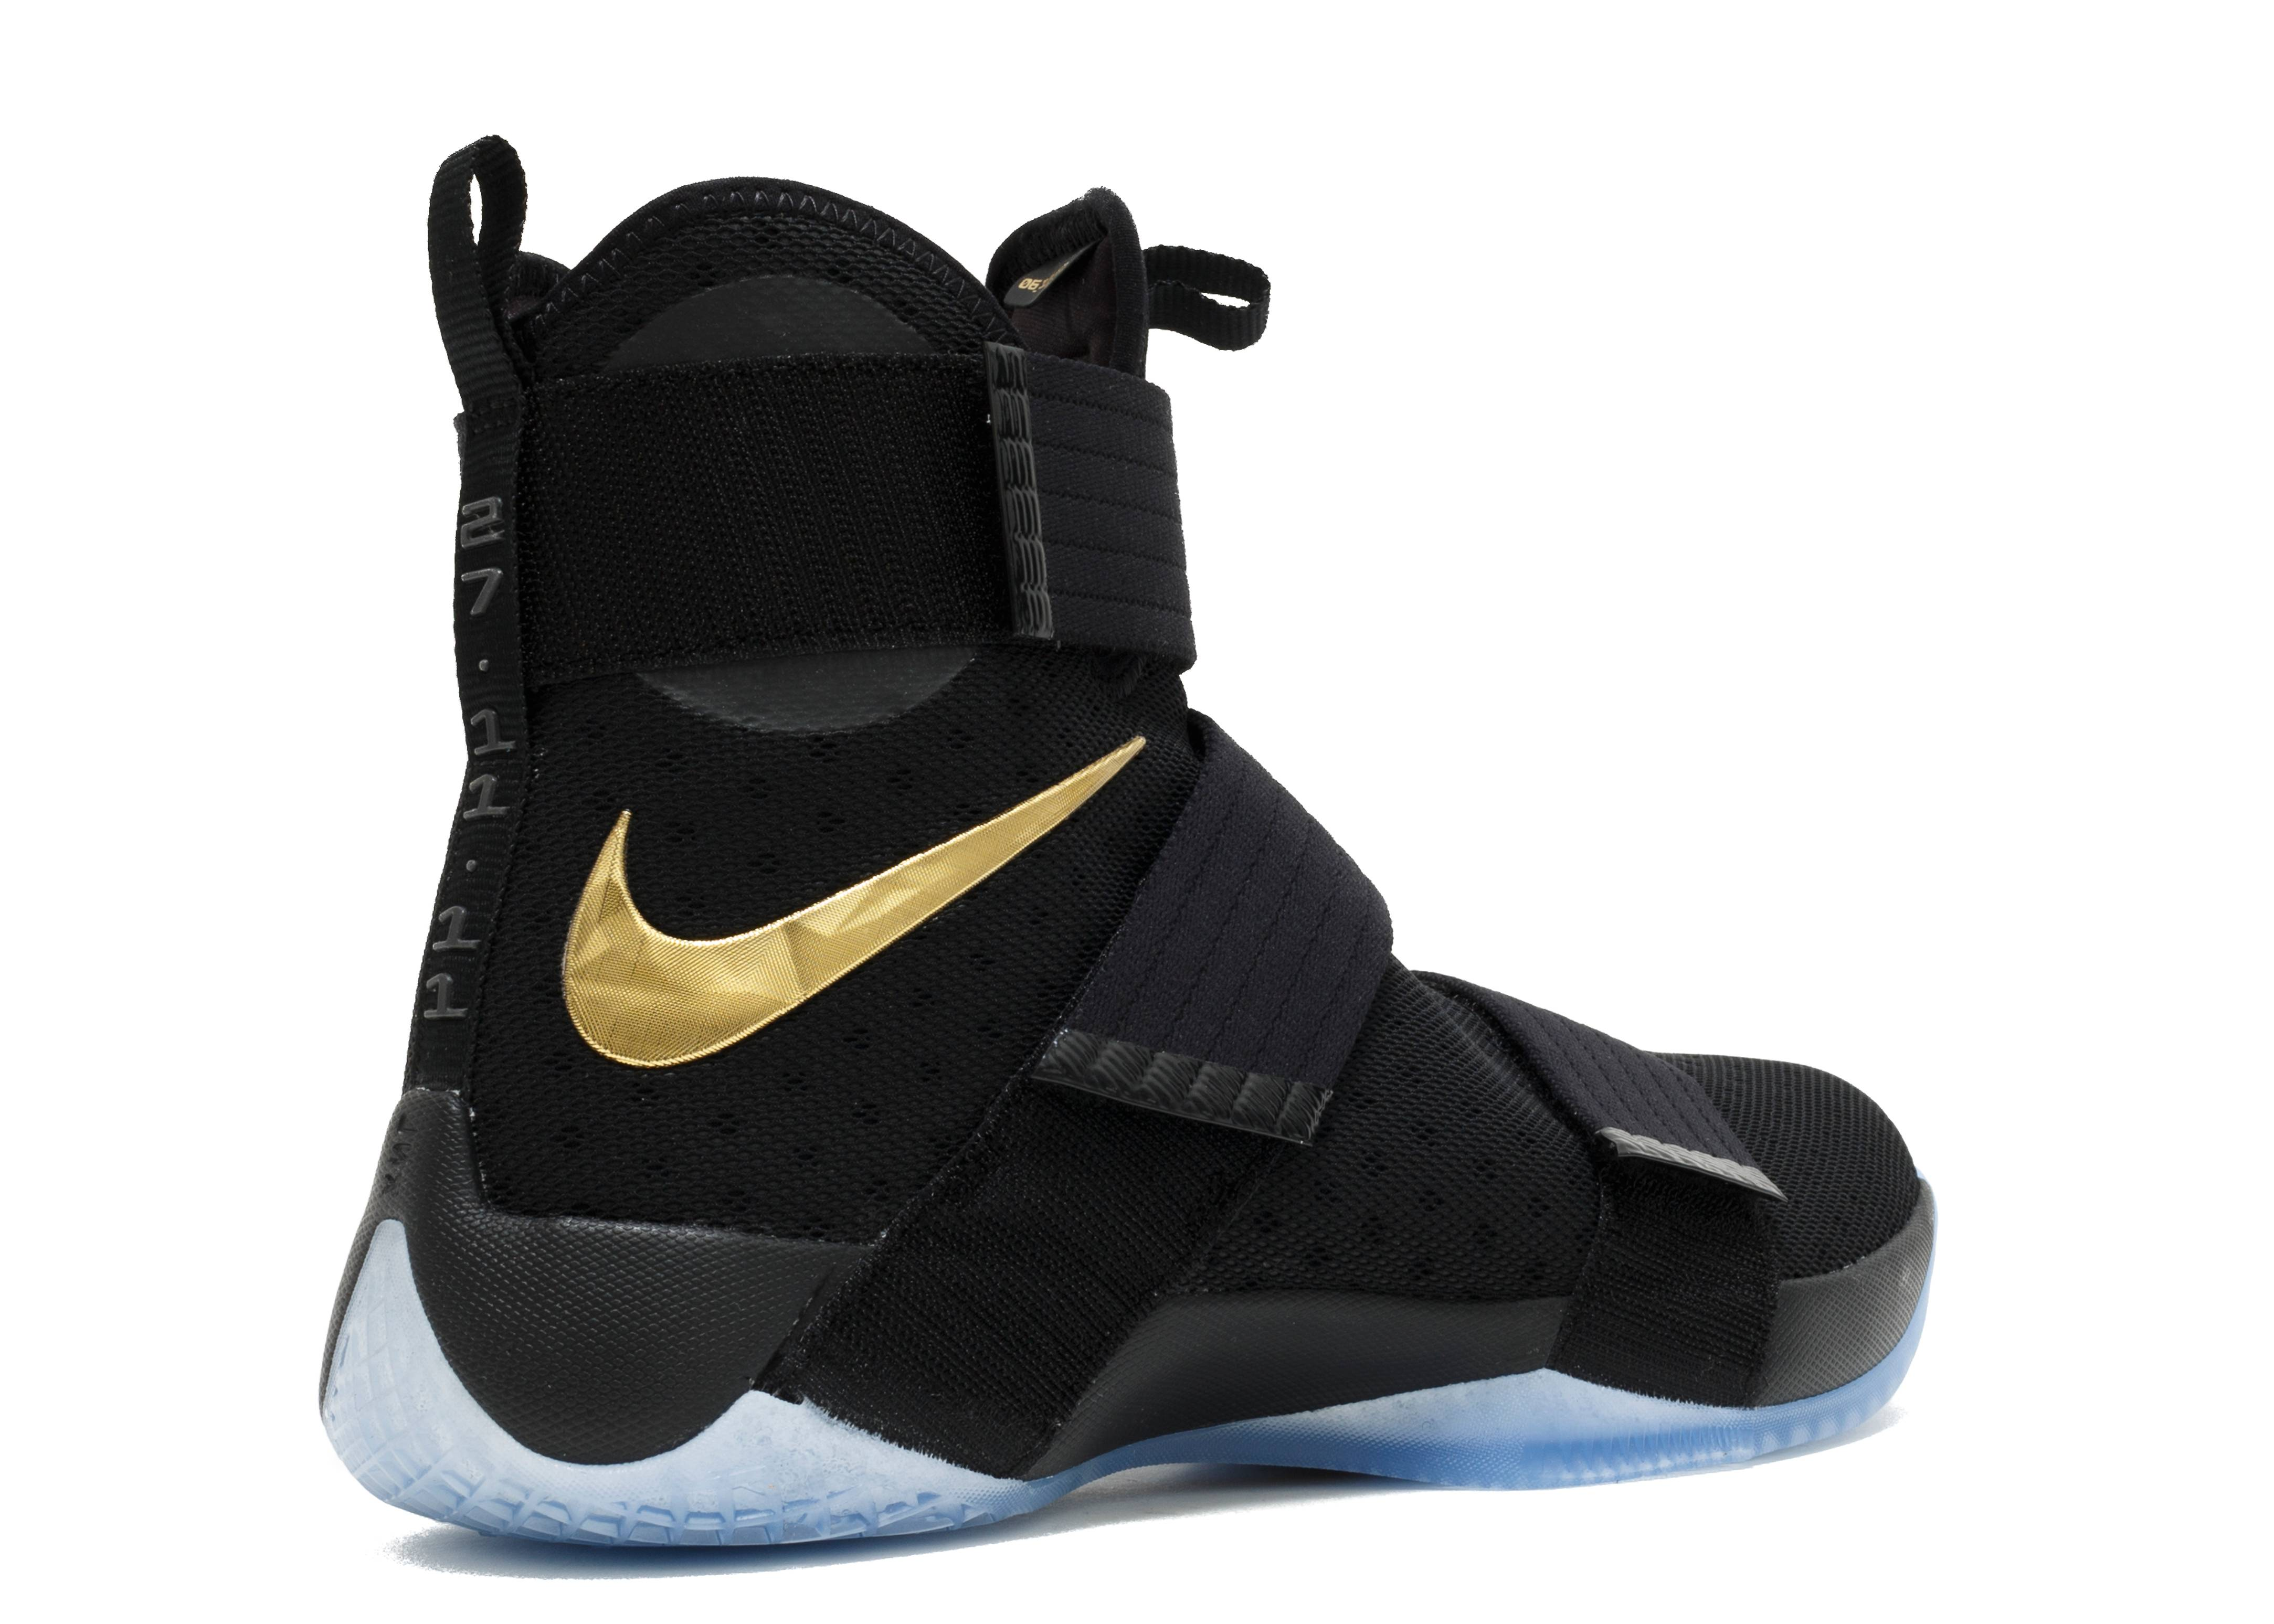 official photos a90bc 755f5 france grey mens blue nike lebron soldier 10 e8803 2fd11  best price game 7  fifty two years championship pack nike 925432 900 multi color multi color